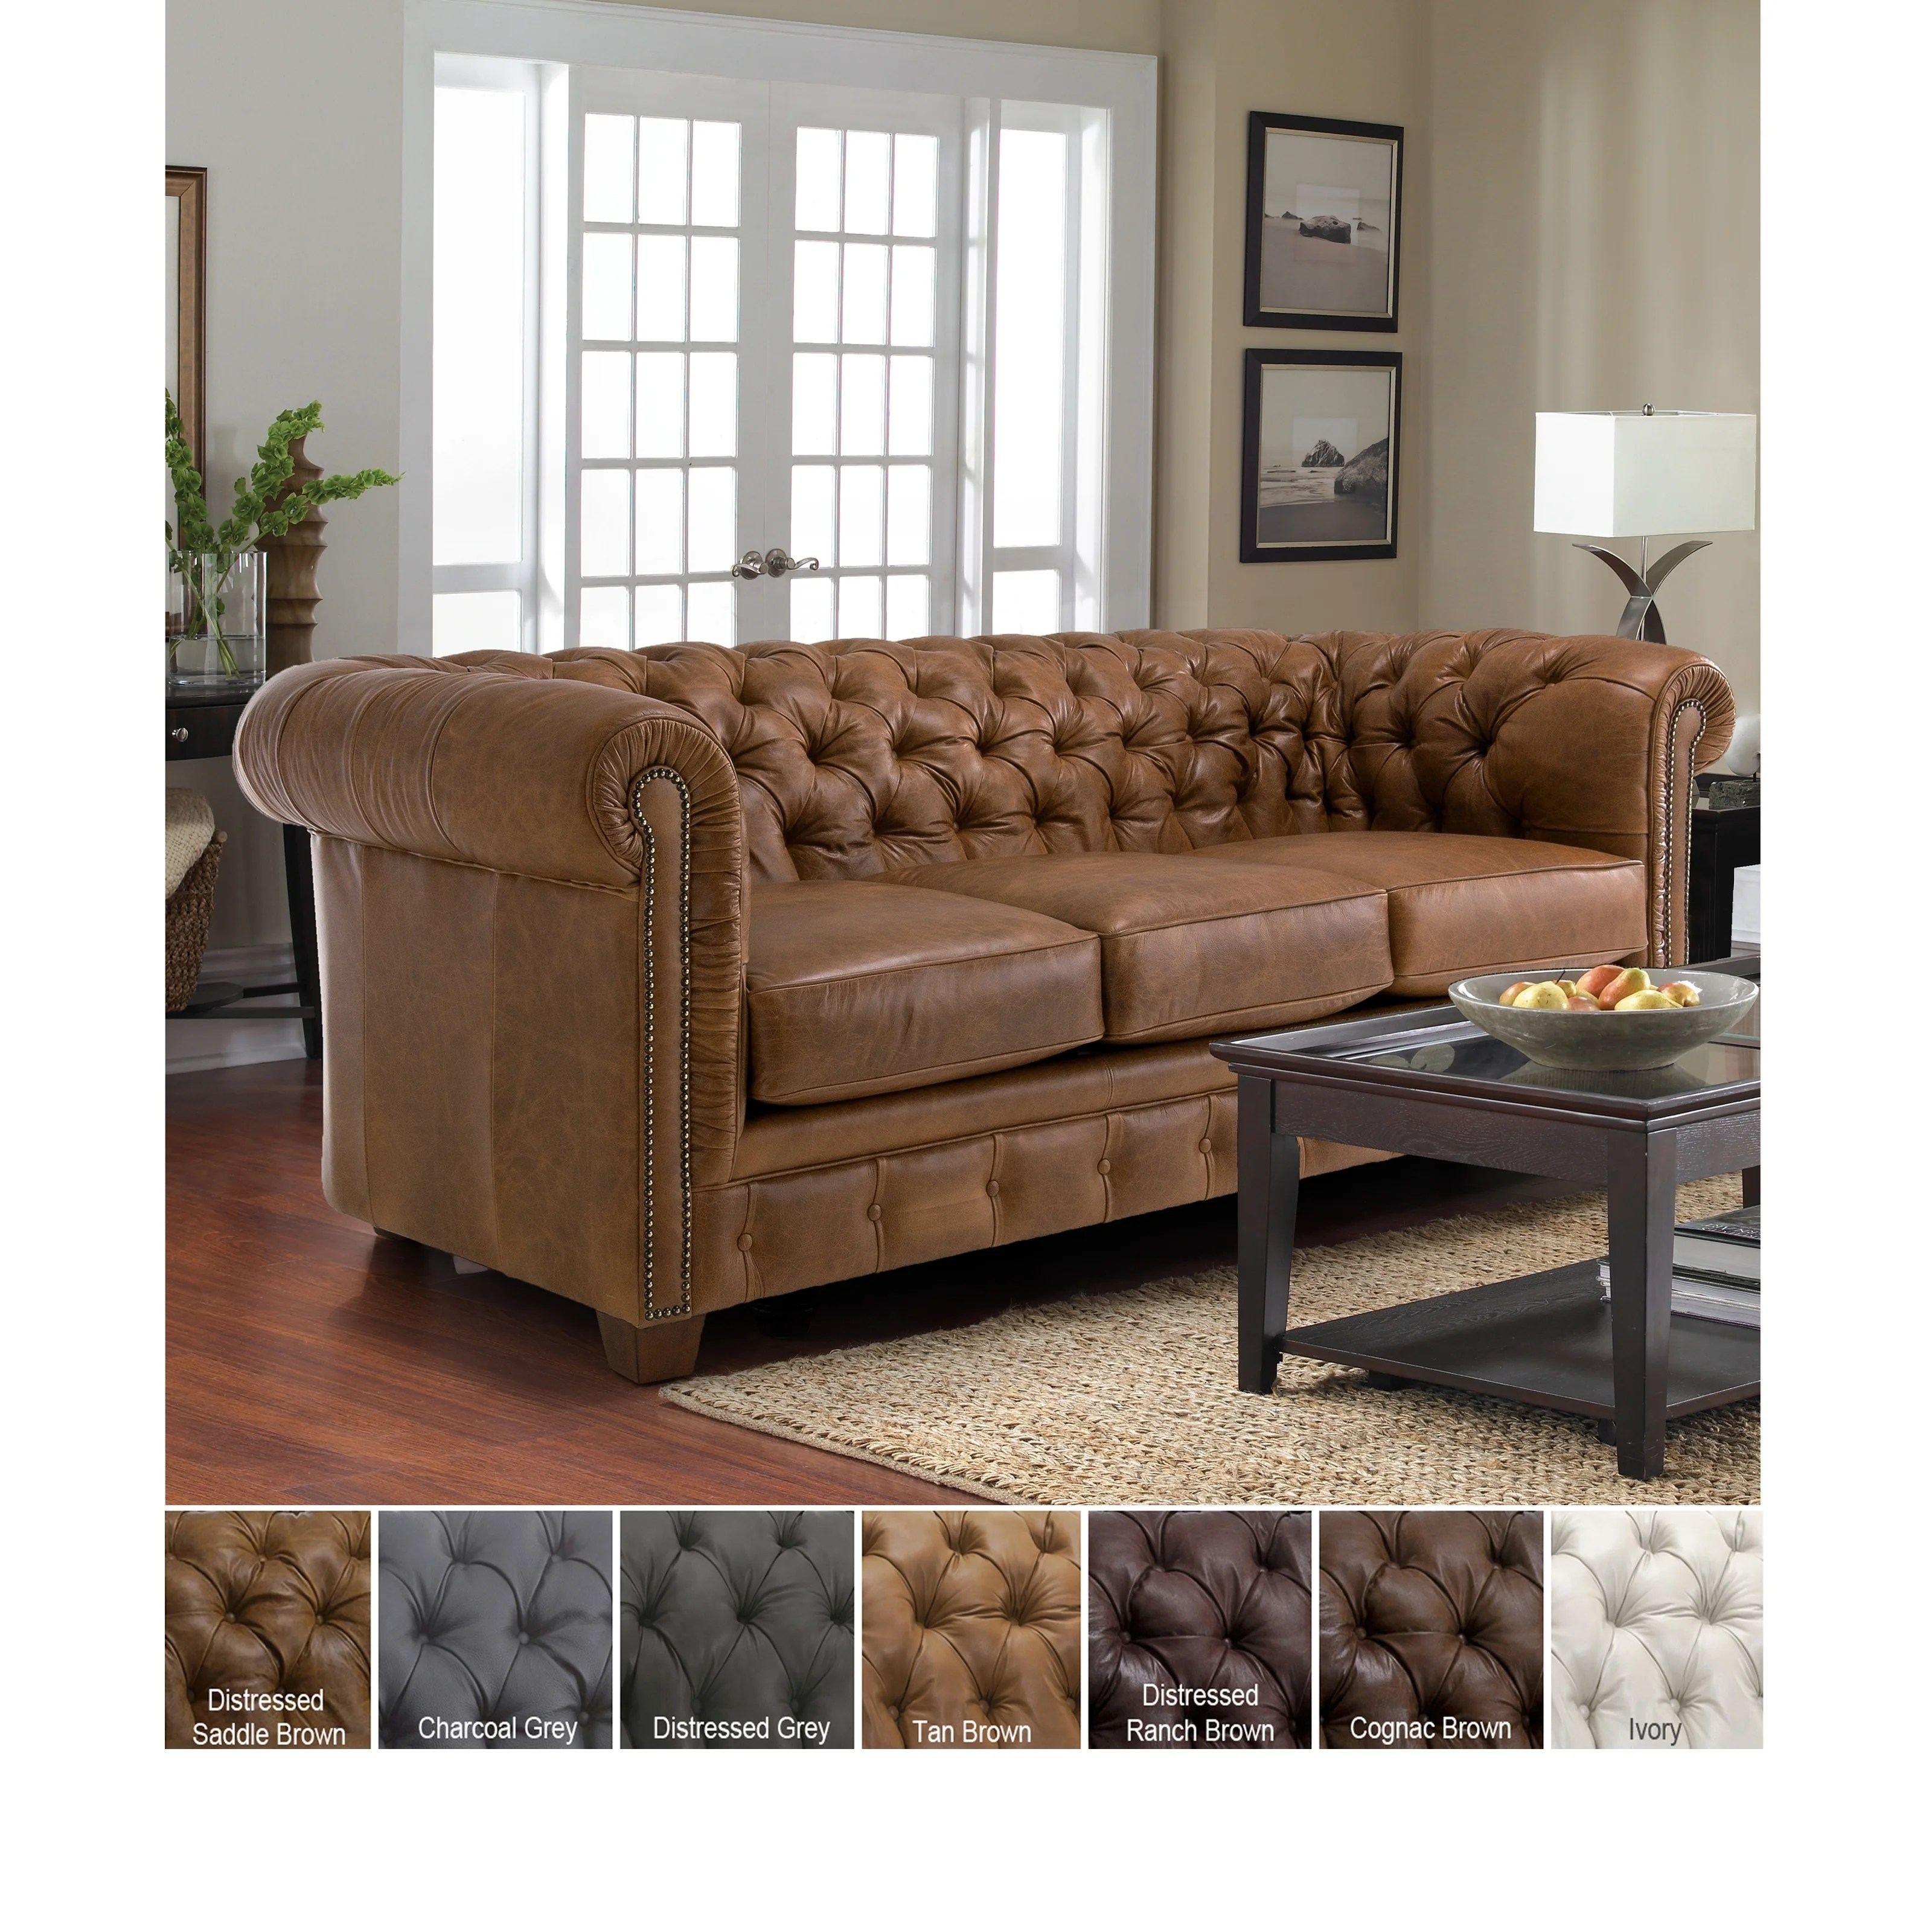 Buy Leather Sofas Couches Online At Overstock Our Best